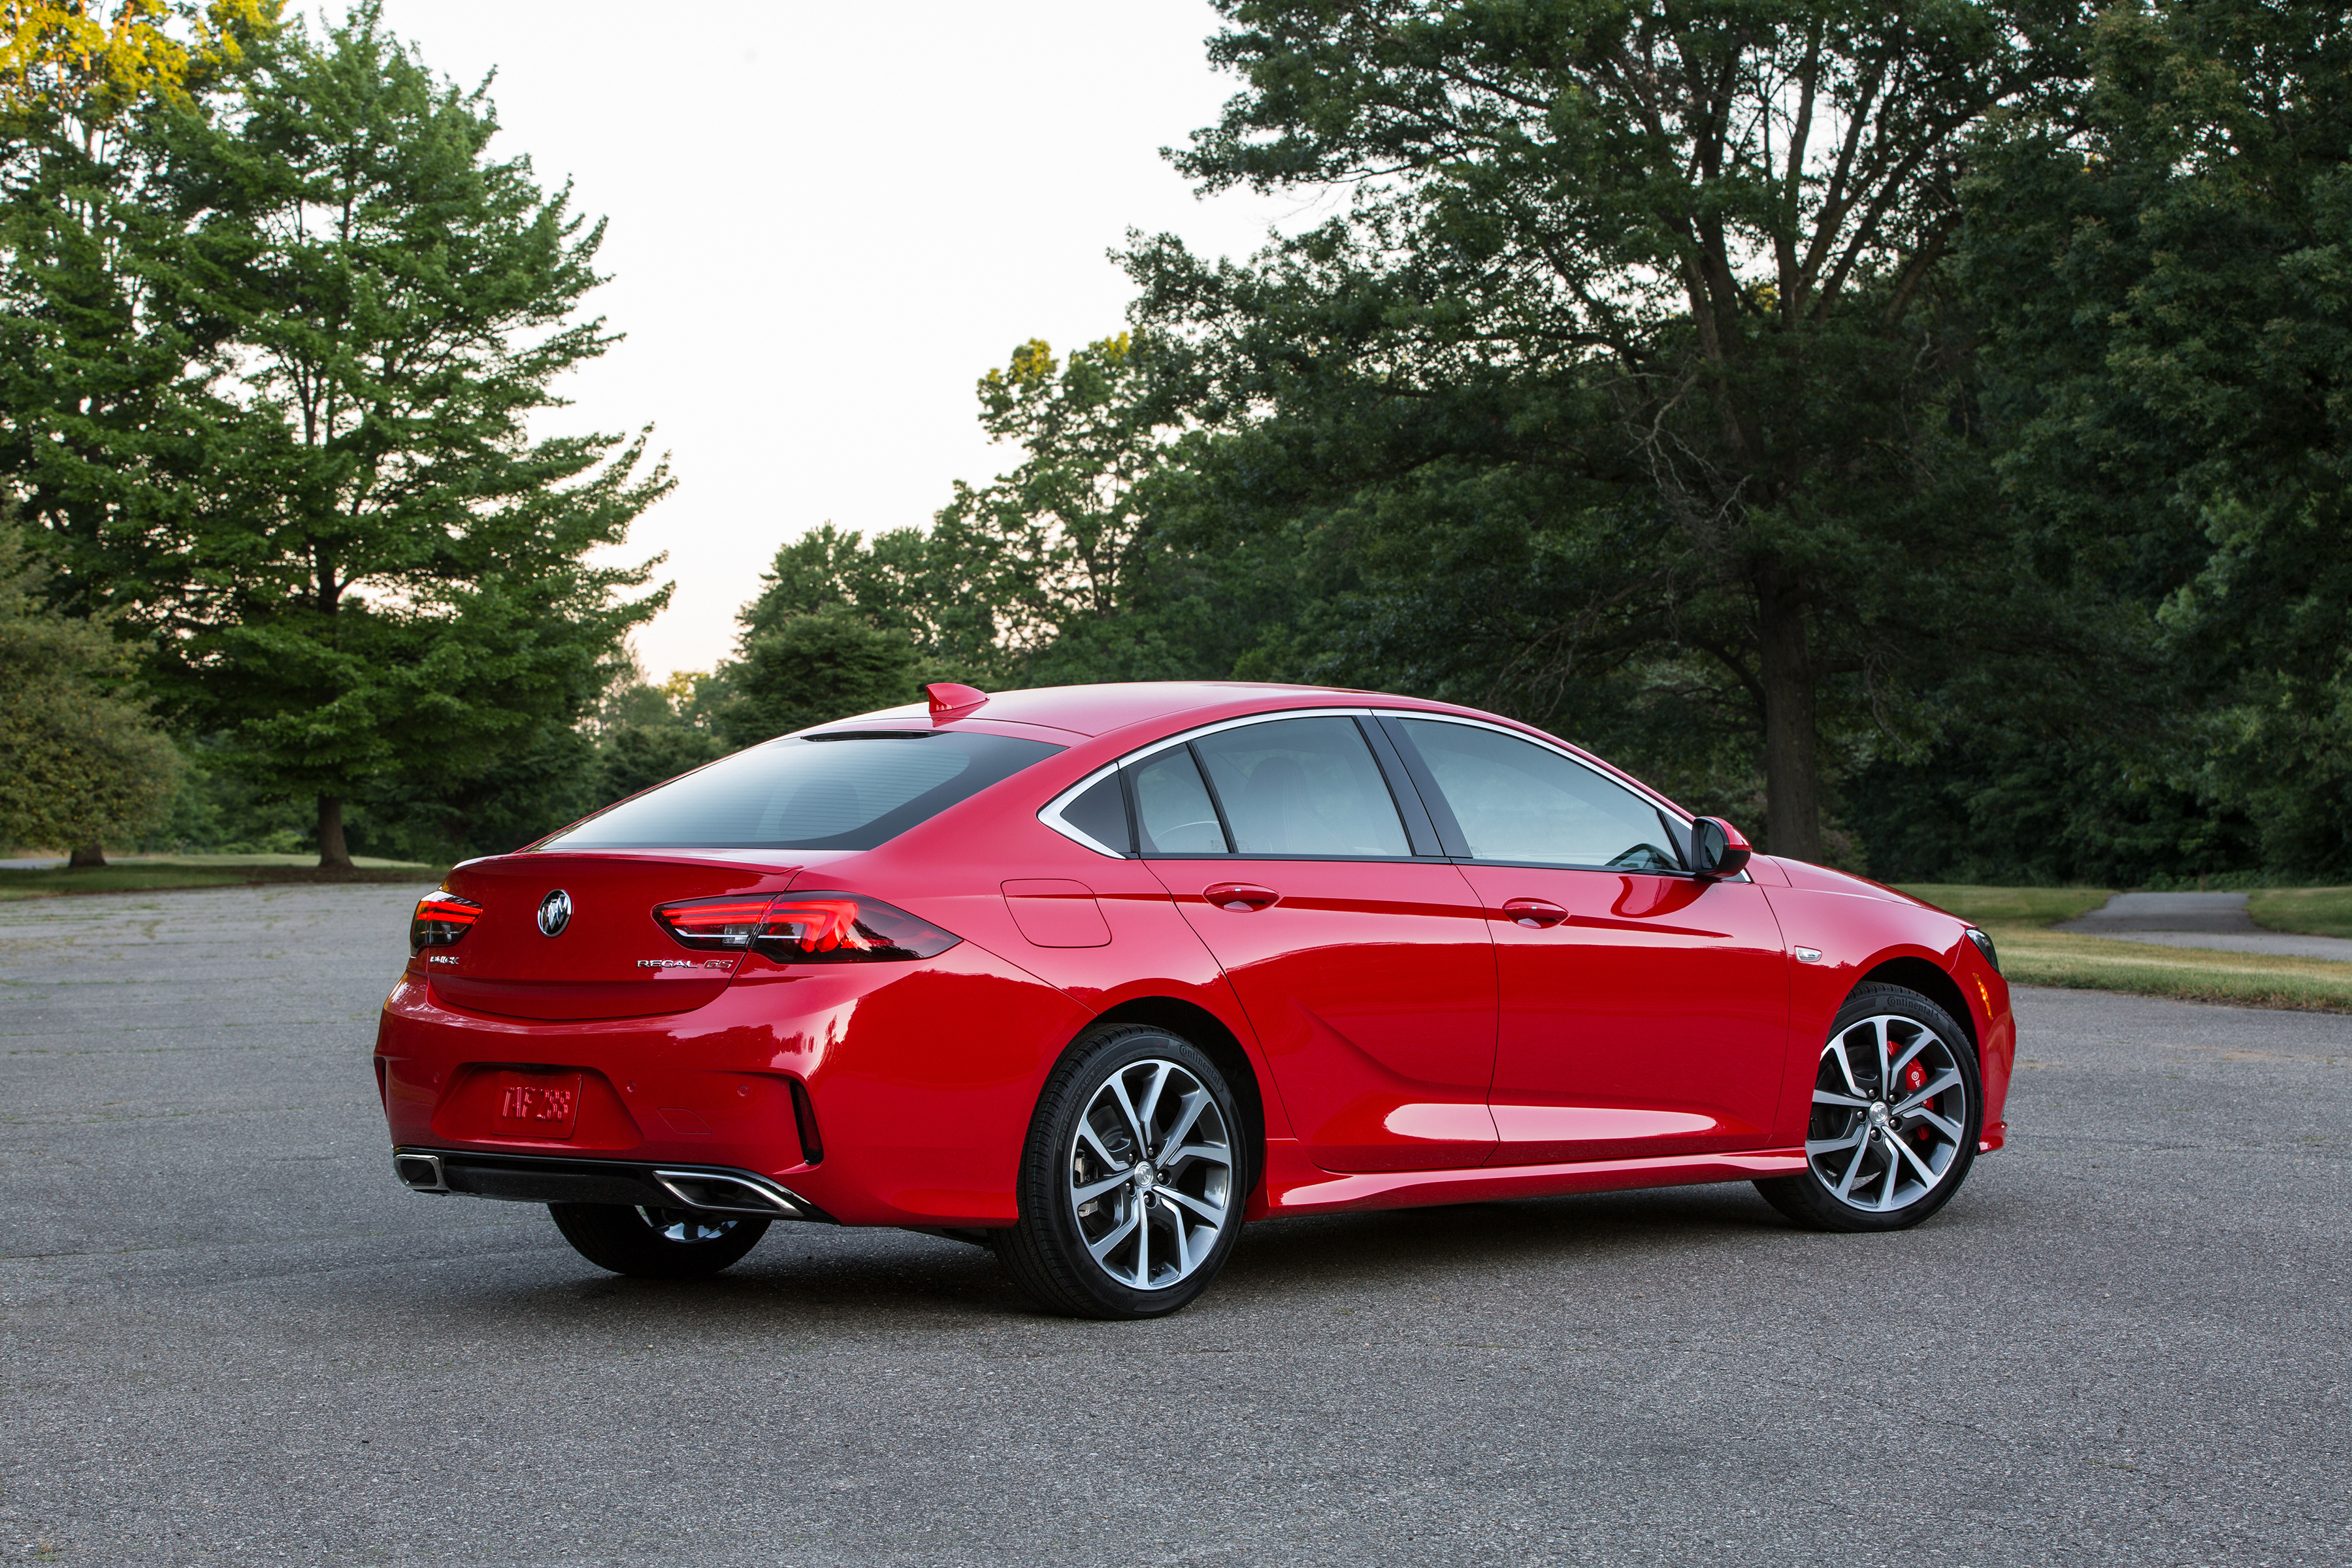 Buick Regal Gs 2018 Review >> 2018 Buick Regal Gs Top Speed